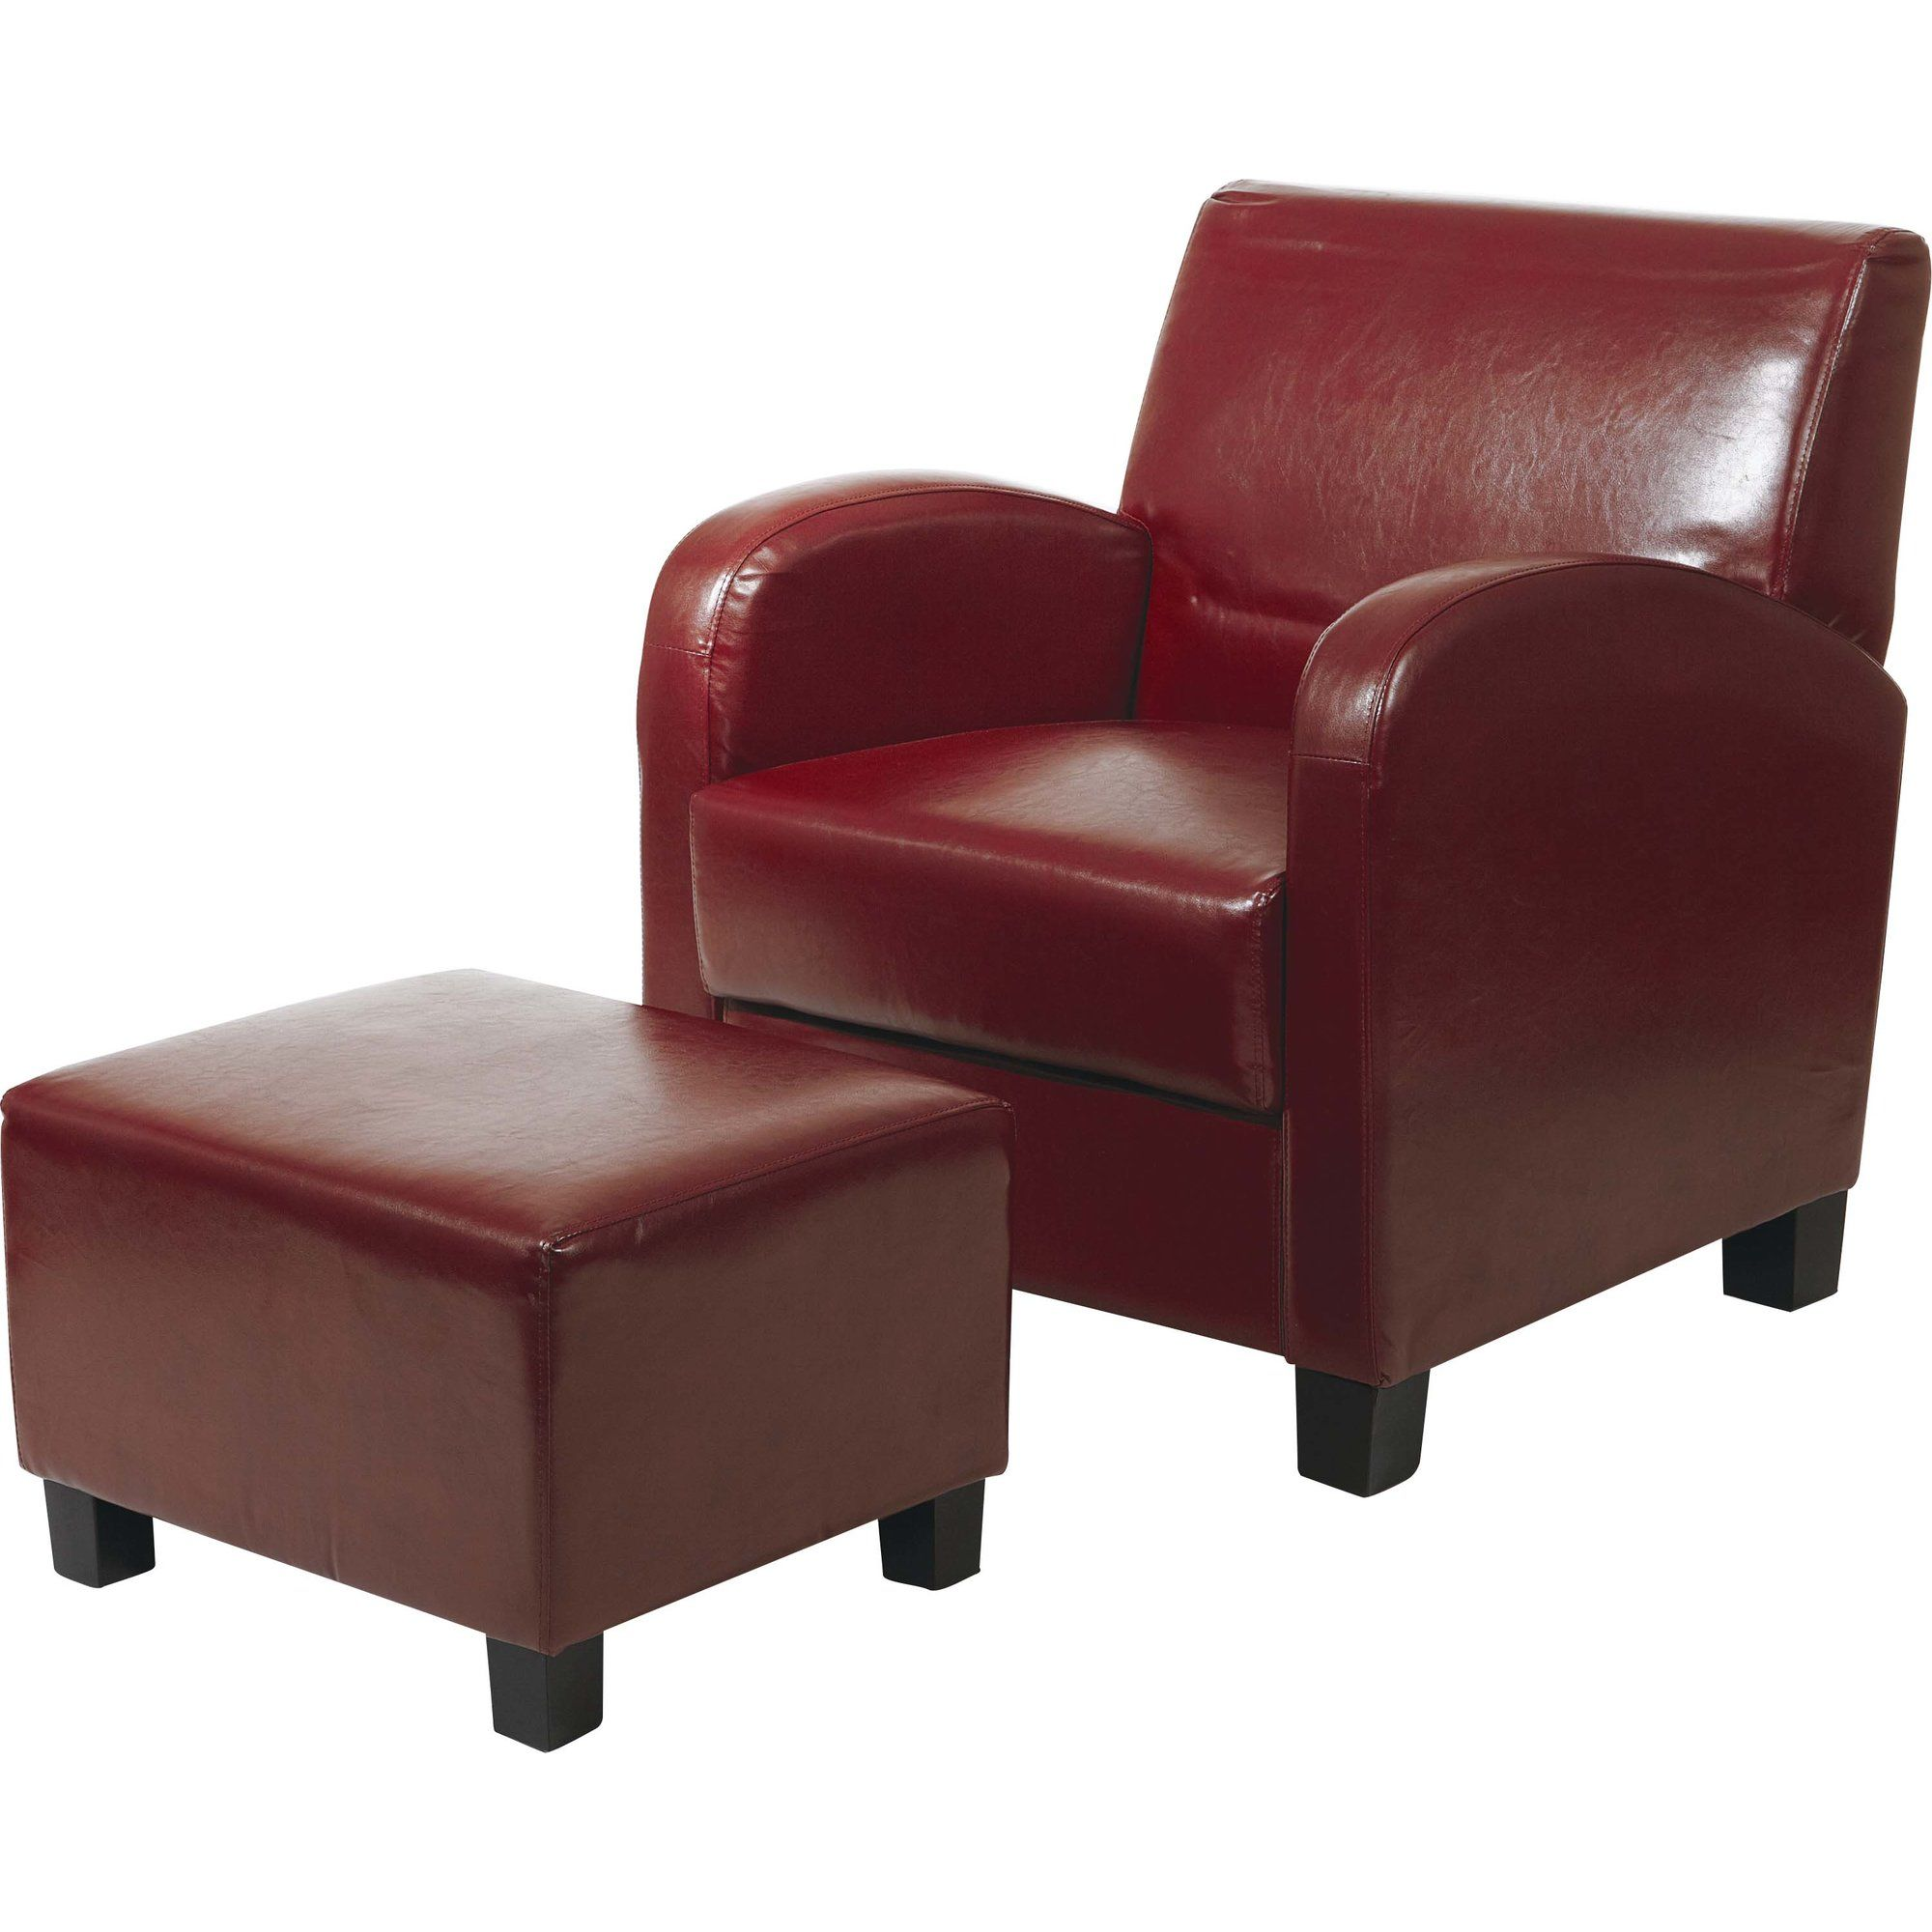 Clubsessel Club Sessel Mit Hocker Stühle Pinterest Chair Office Star